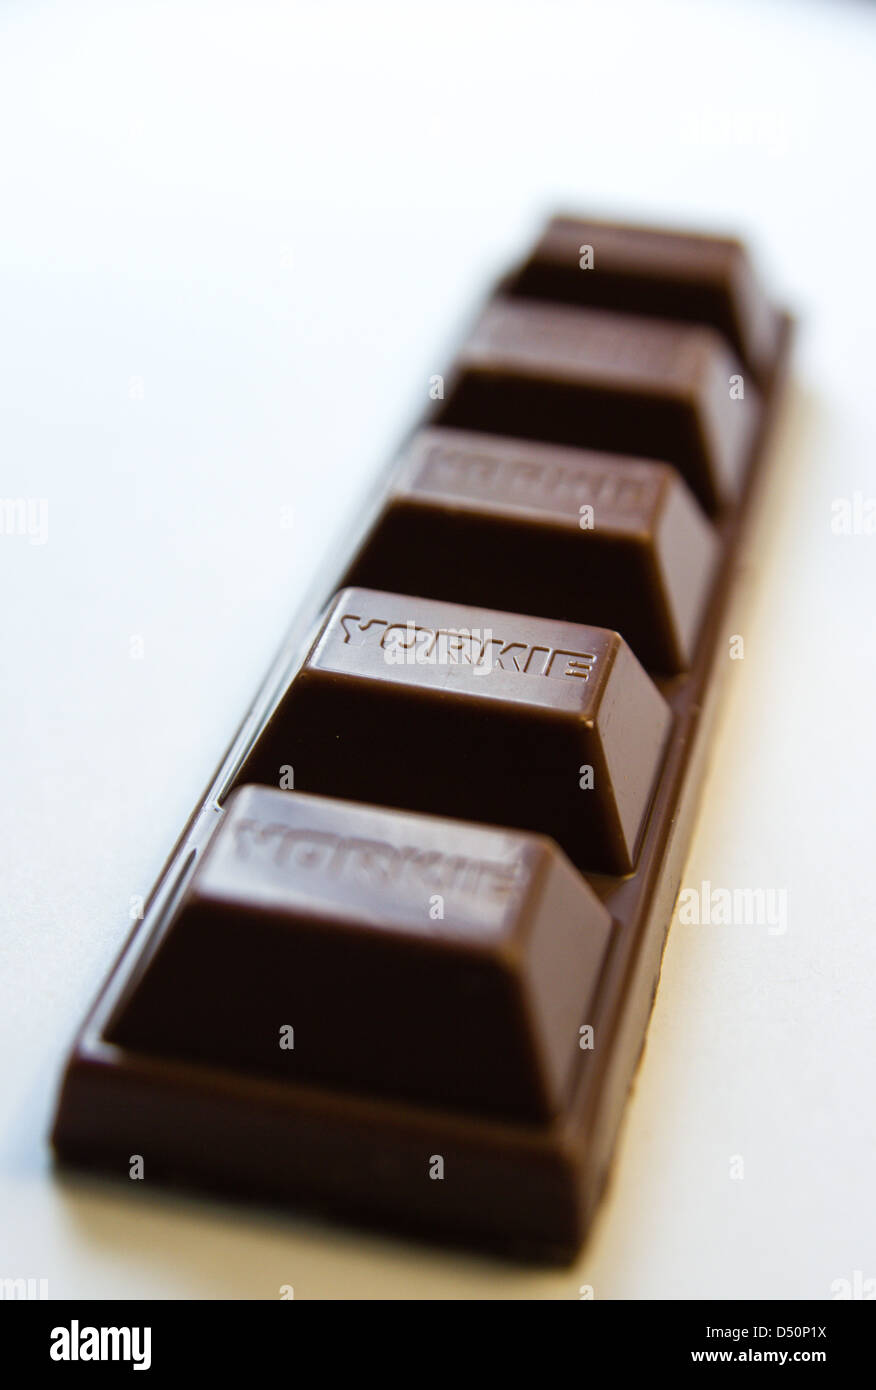 A close up of a freshly unwrapped chocolate bar - Stock Image